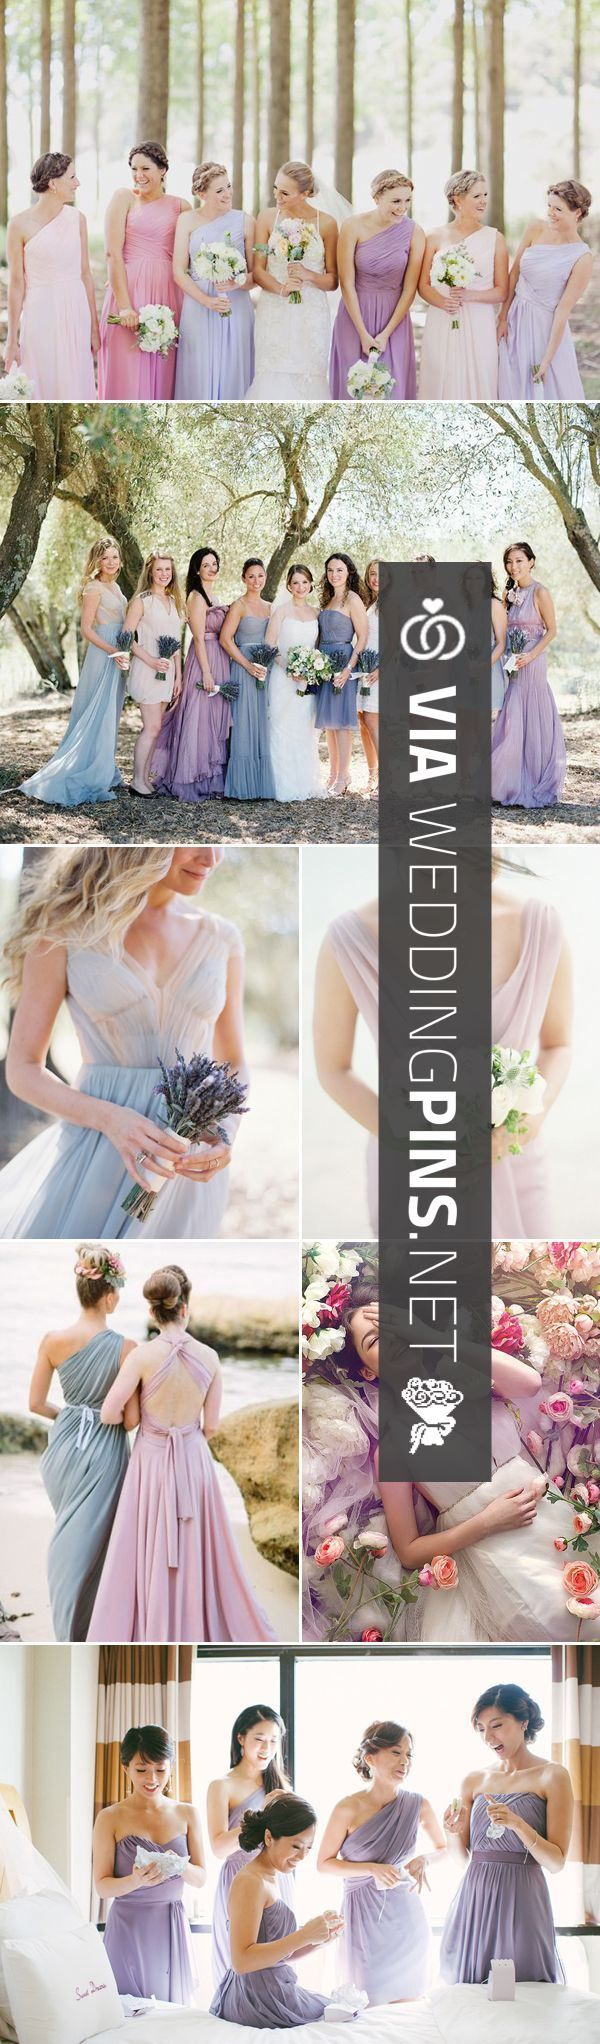 Wedding Pins! The Best Wedding Picture Ideas! Create Your Wedding Picture List Today!